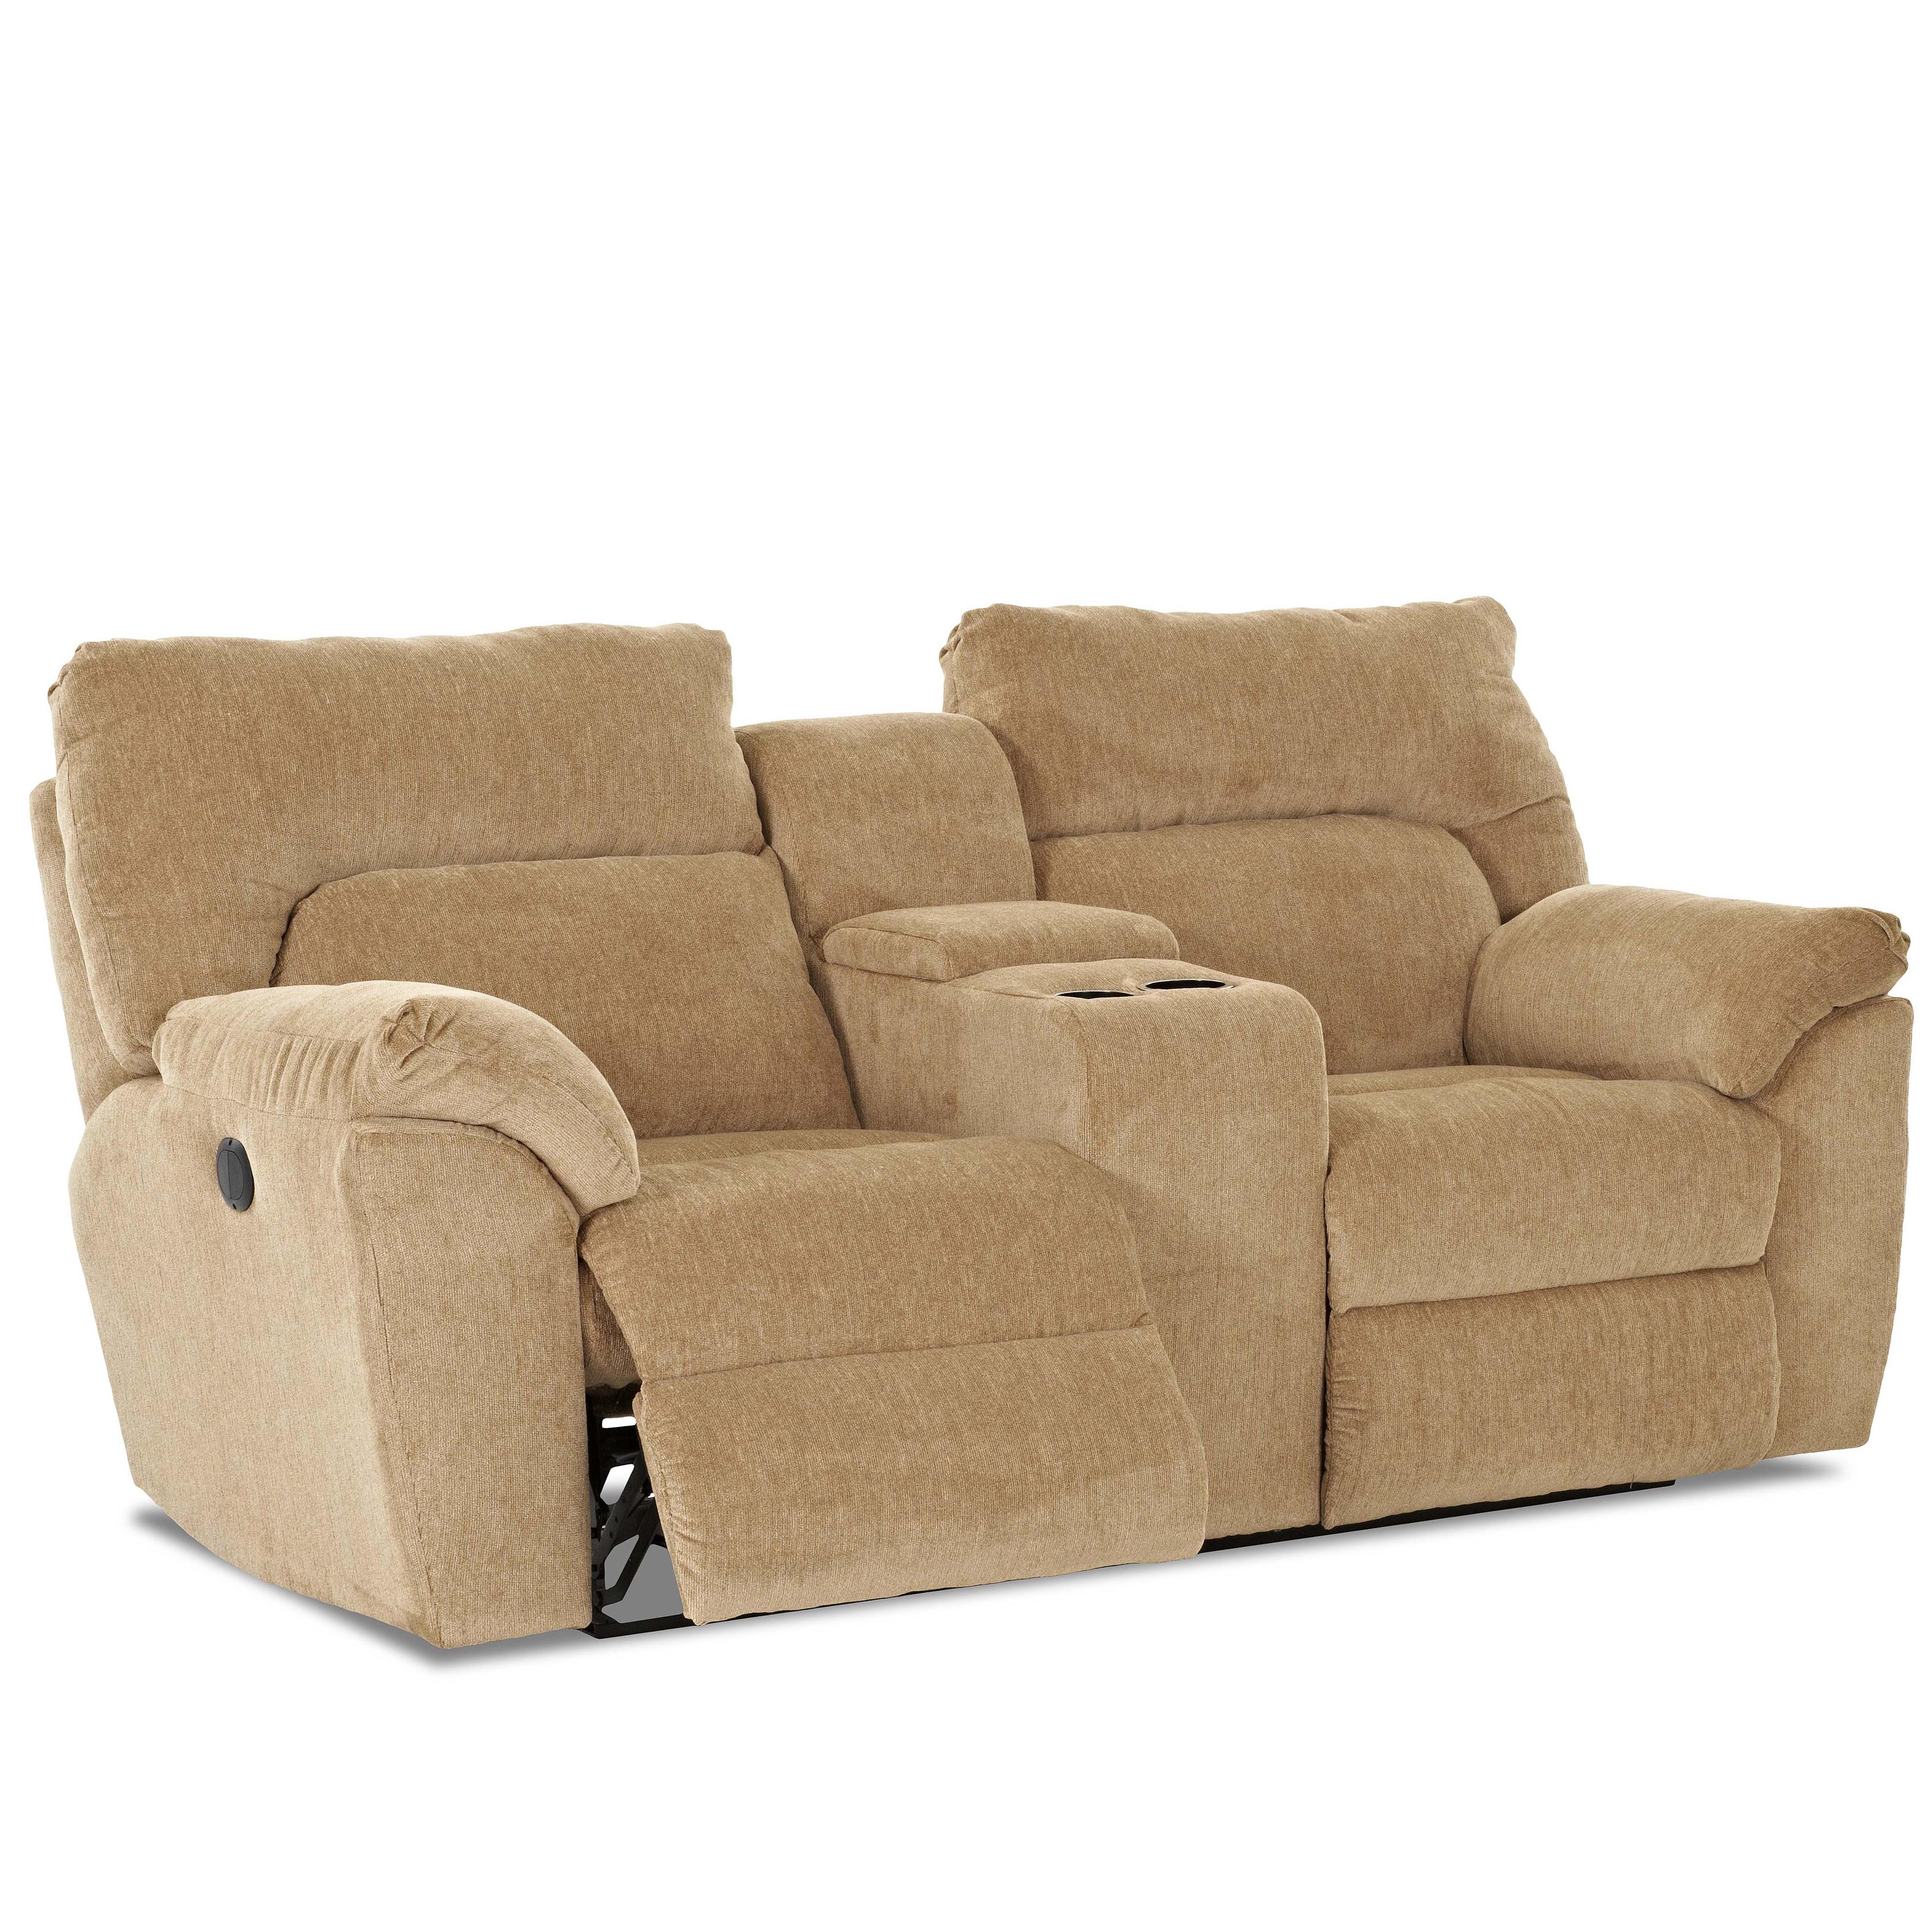 Casual Reclining Loveseat With Console By Klaussner Wolf And Gardiner Wolf Furniture